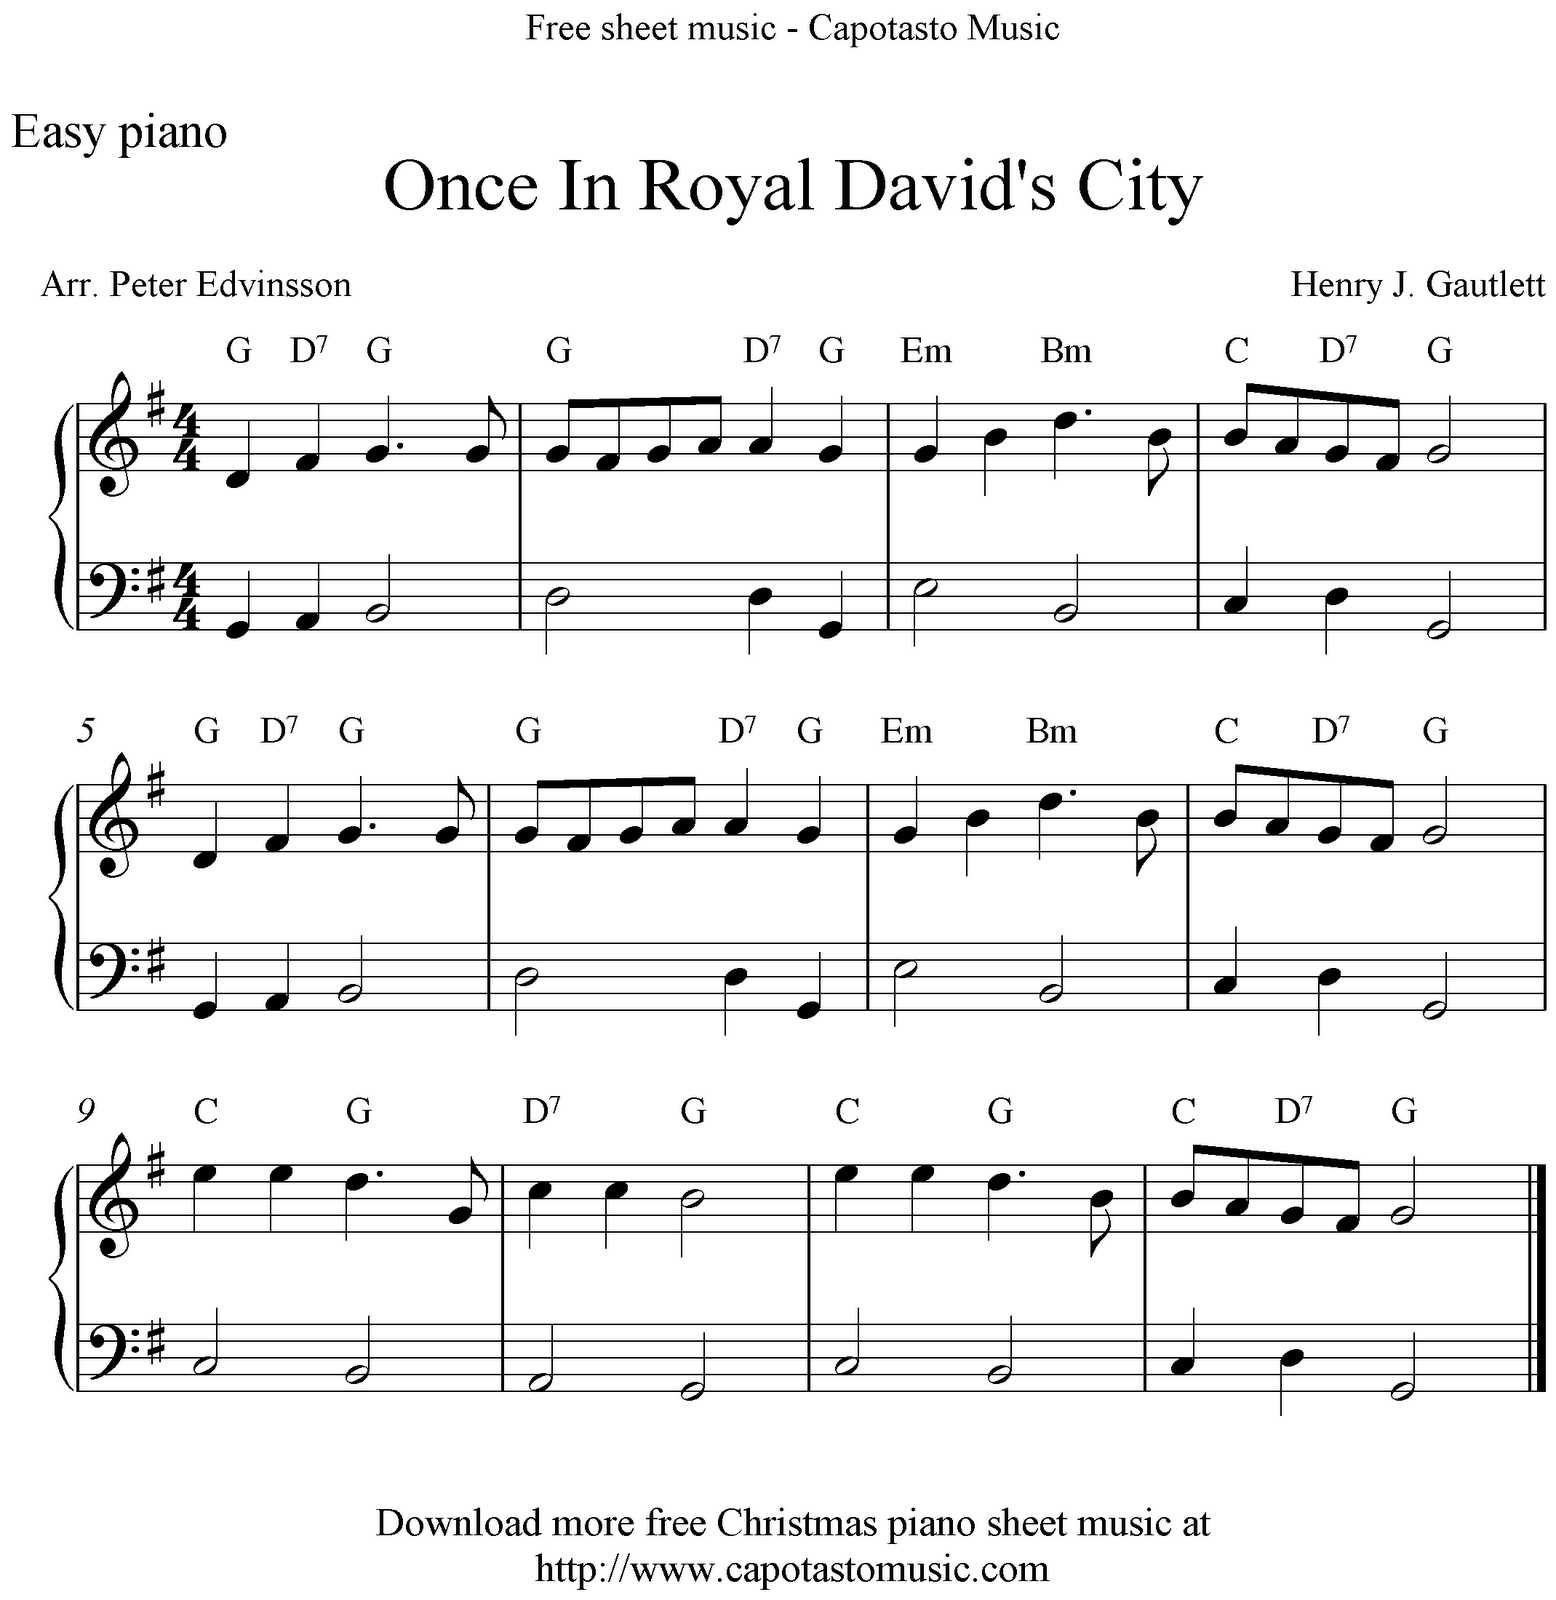 free christmas piano sheet music notes once in royal davids city - Free Christmas Piano Sheet Music